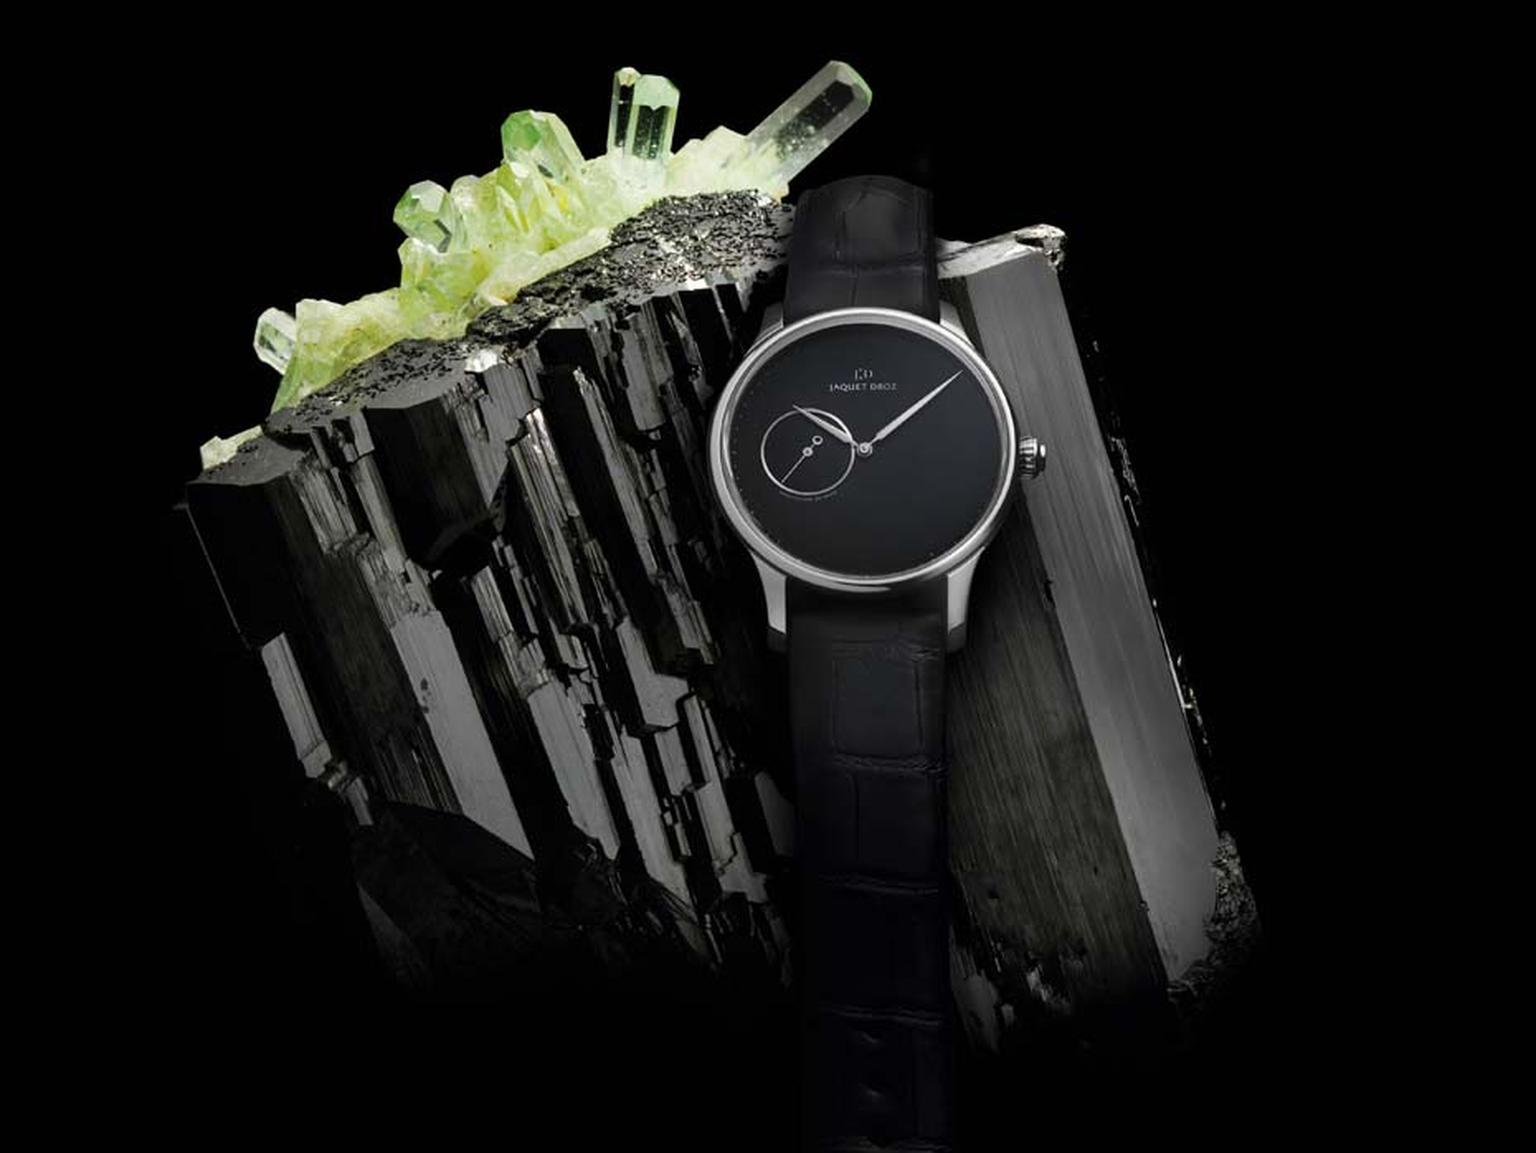 Jaquet Droz Minerals collection Grande Heure Minute watch with an onyx dial.